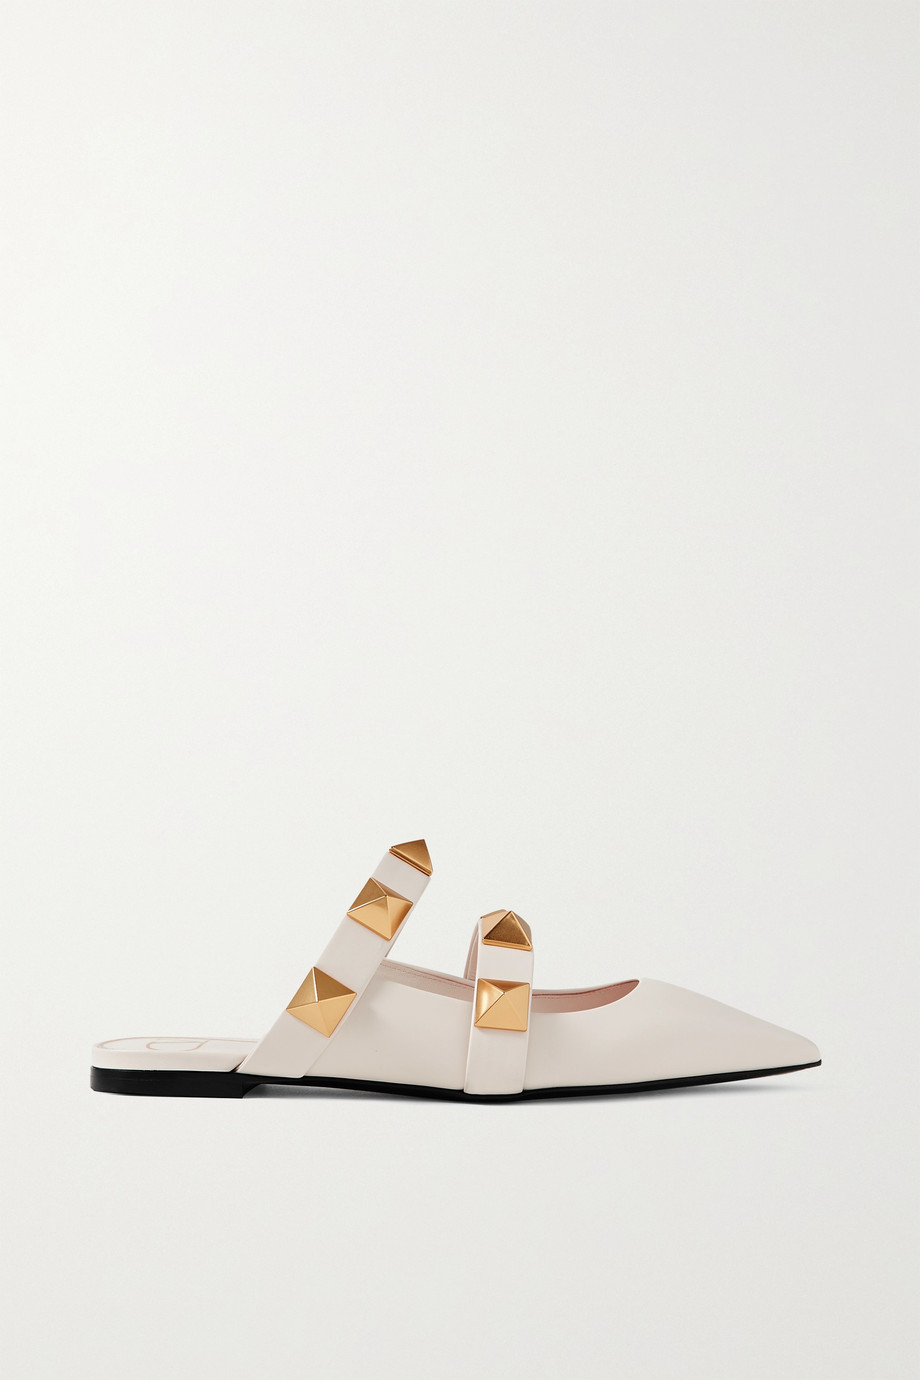 Valentino Valentino Garavani Upstud leather point-toe slippers